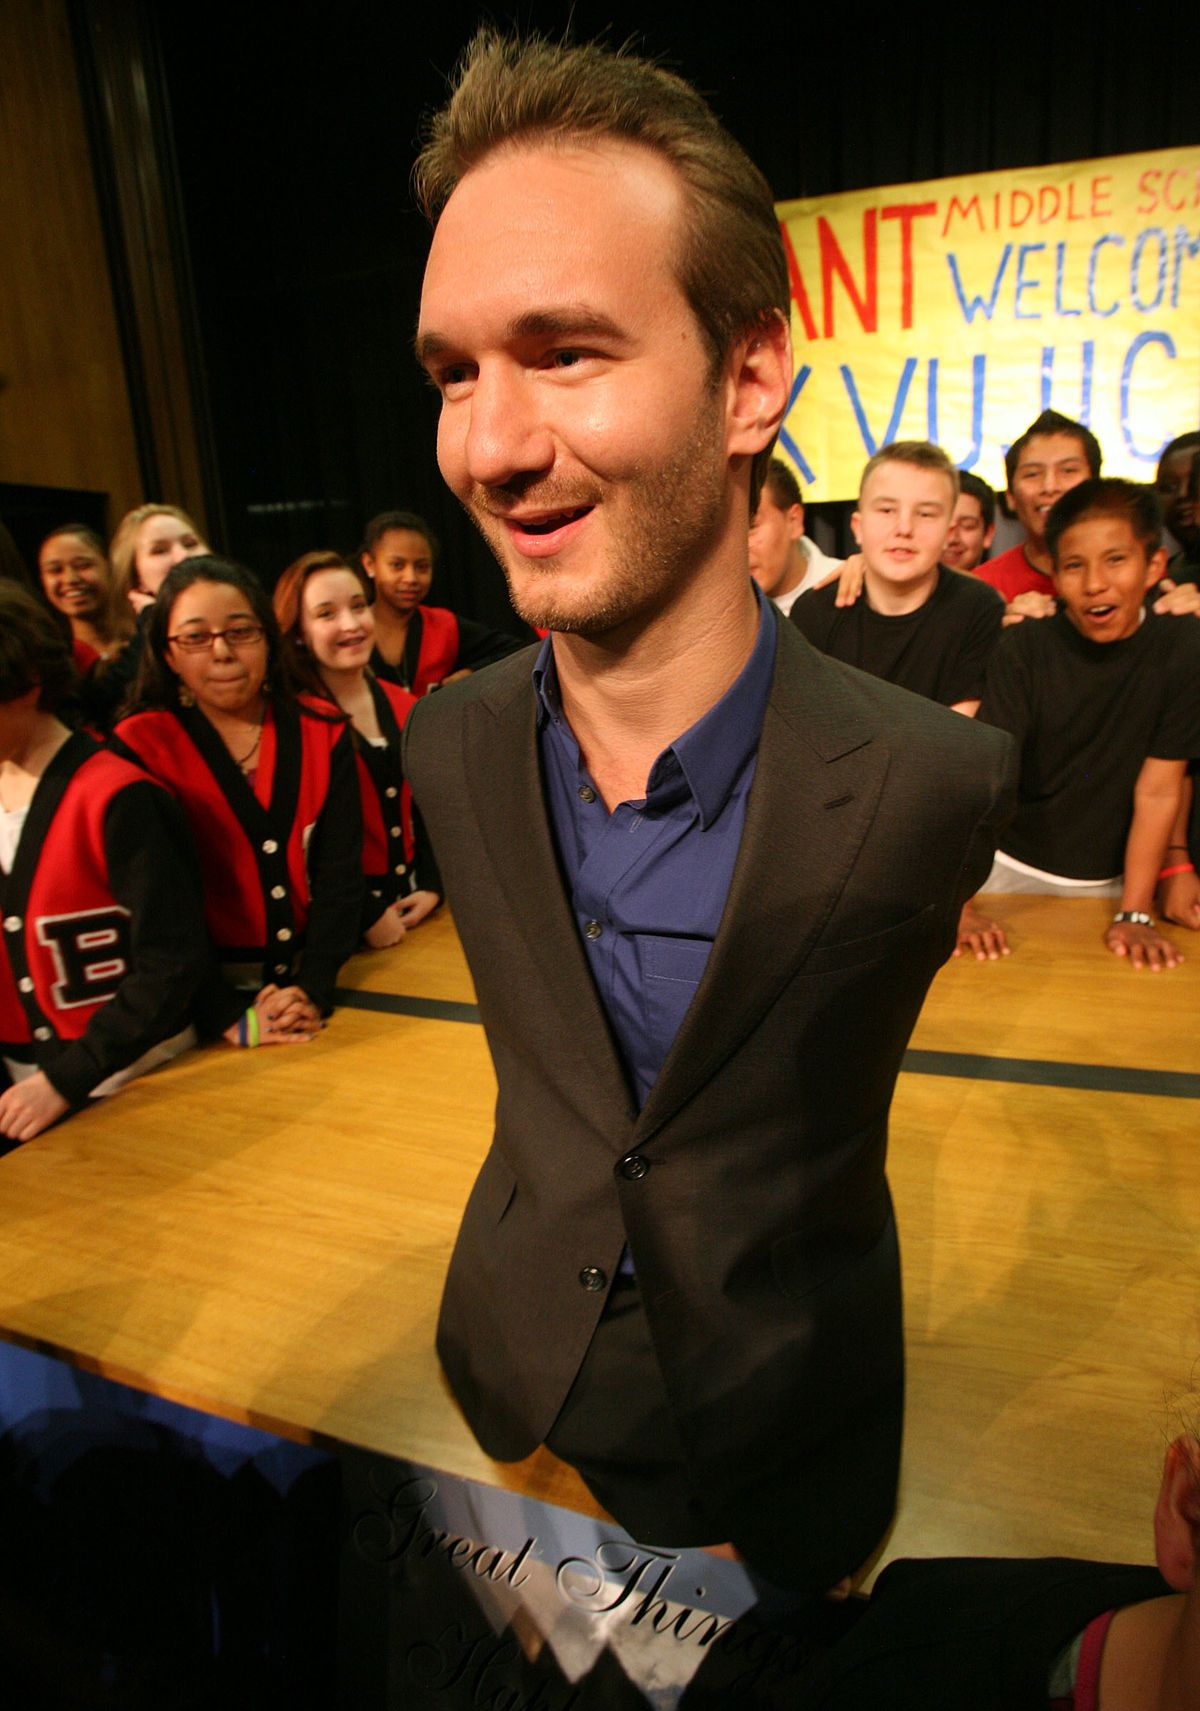 Nick Vujicic, who was born without arms or legs, gets ready for a photo after giving a motivational speech at Bryant Middle School in Salt Lake City Thursday, March 7, 2013. Vujicic is one of 13 keynote speakers at RootsTech Connect Feb. 25-27, 2021.